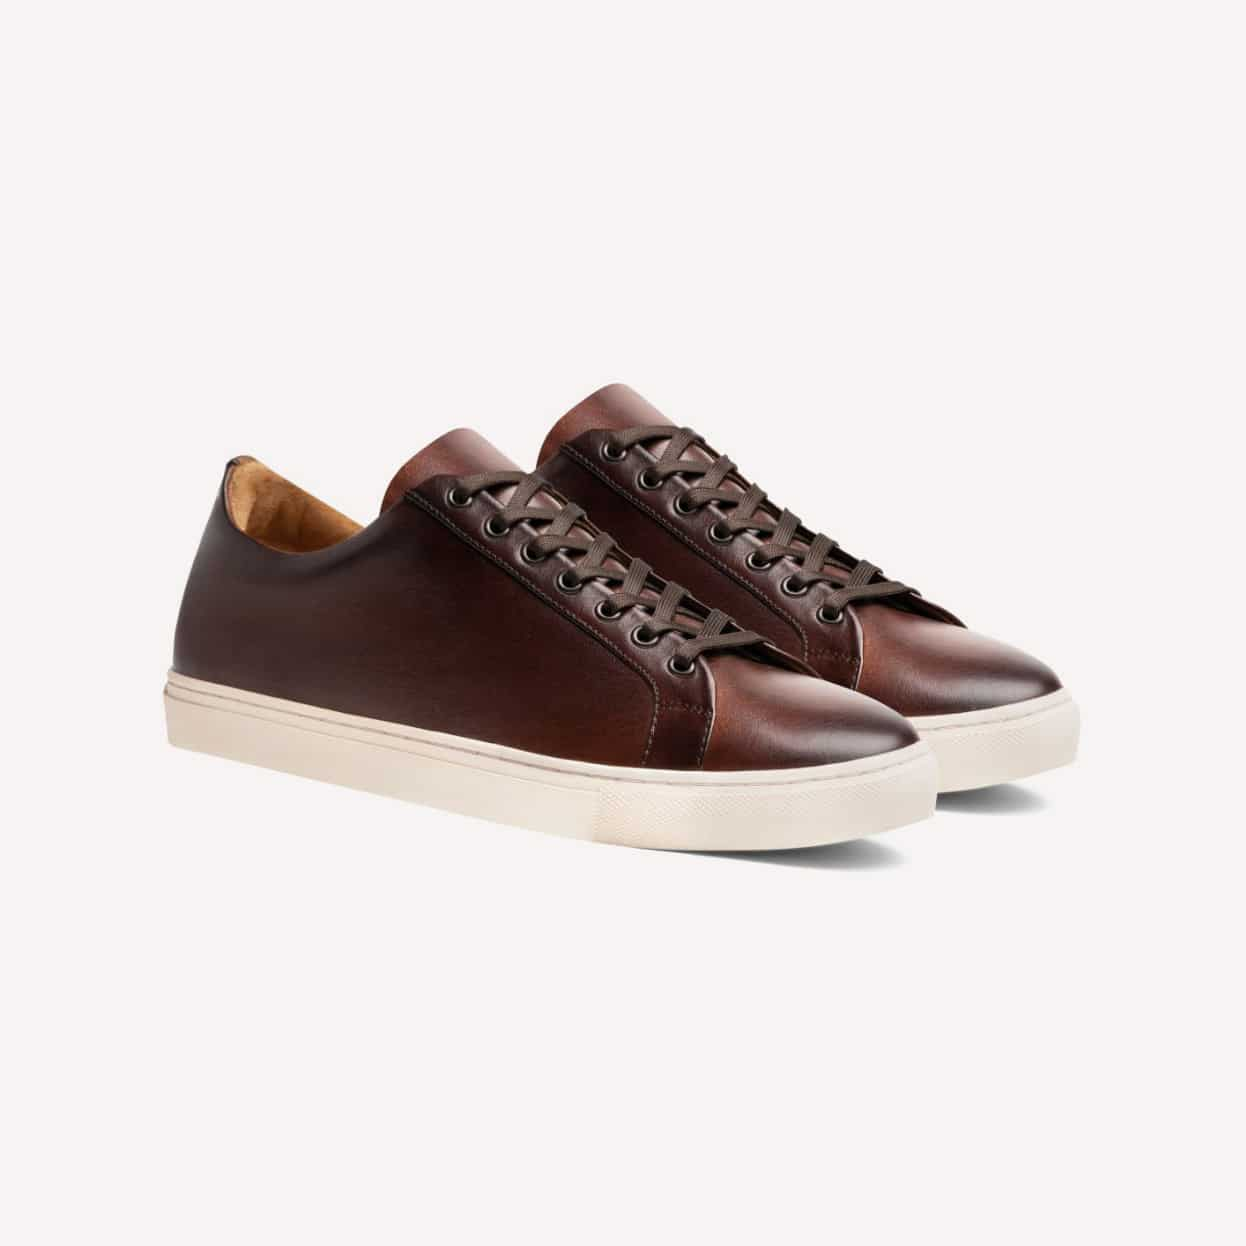 Thursday Boot Co. Premier Low Top Coffee Brown Sneakers